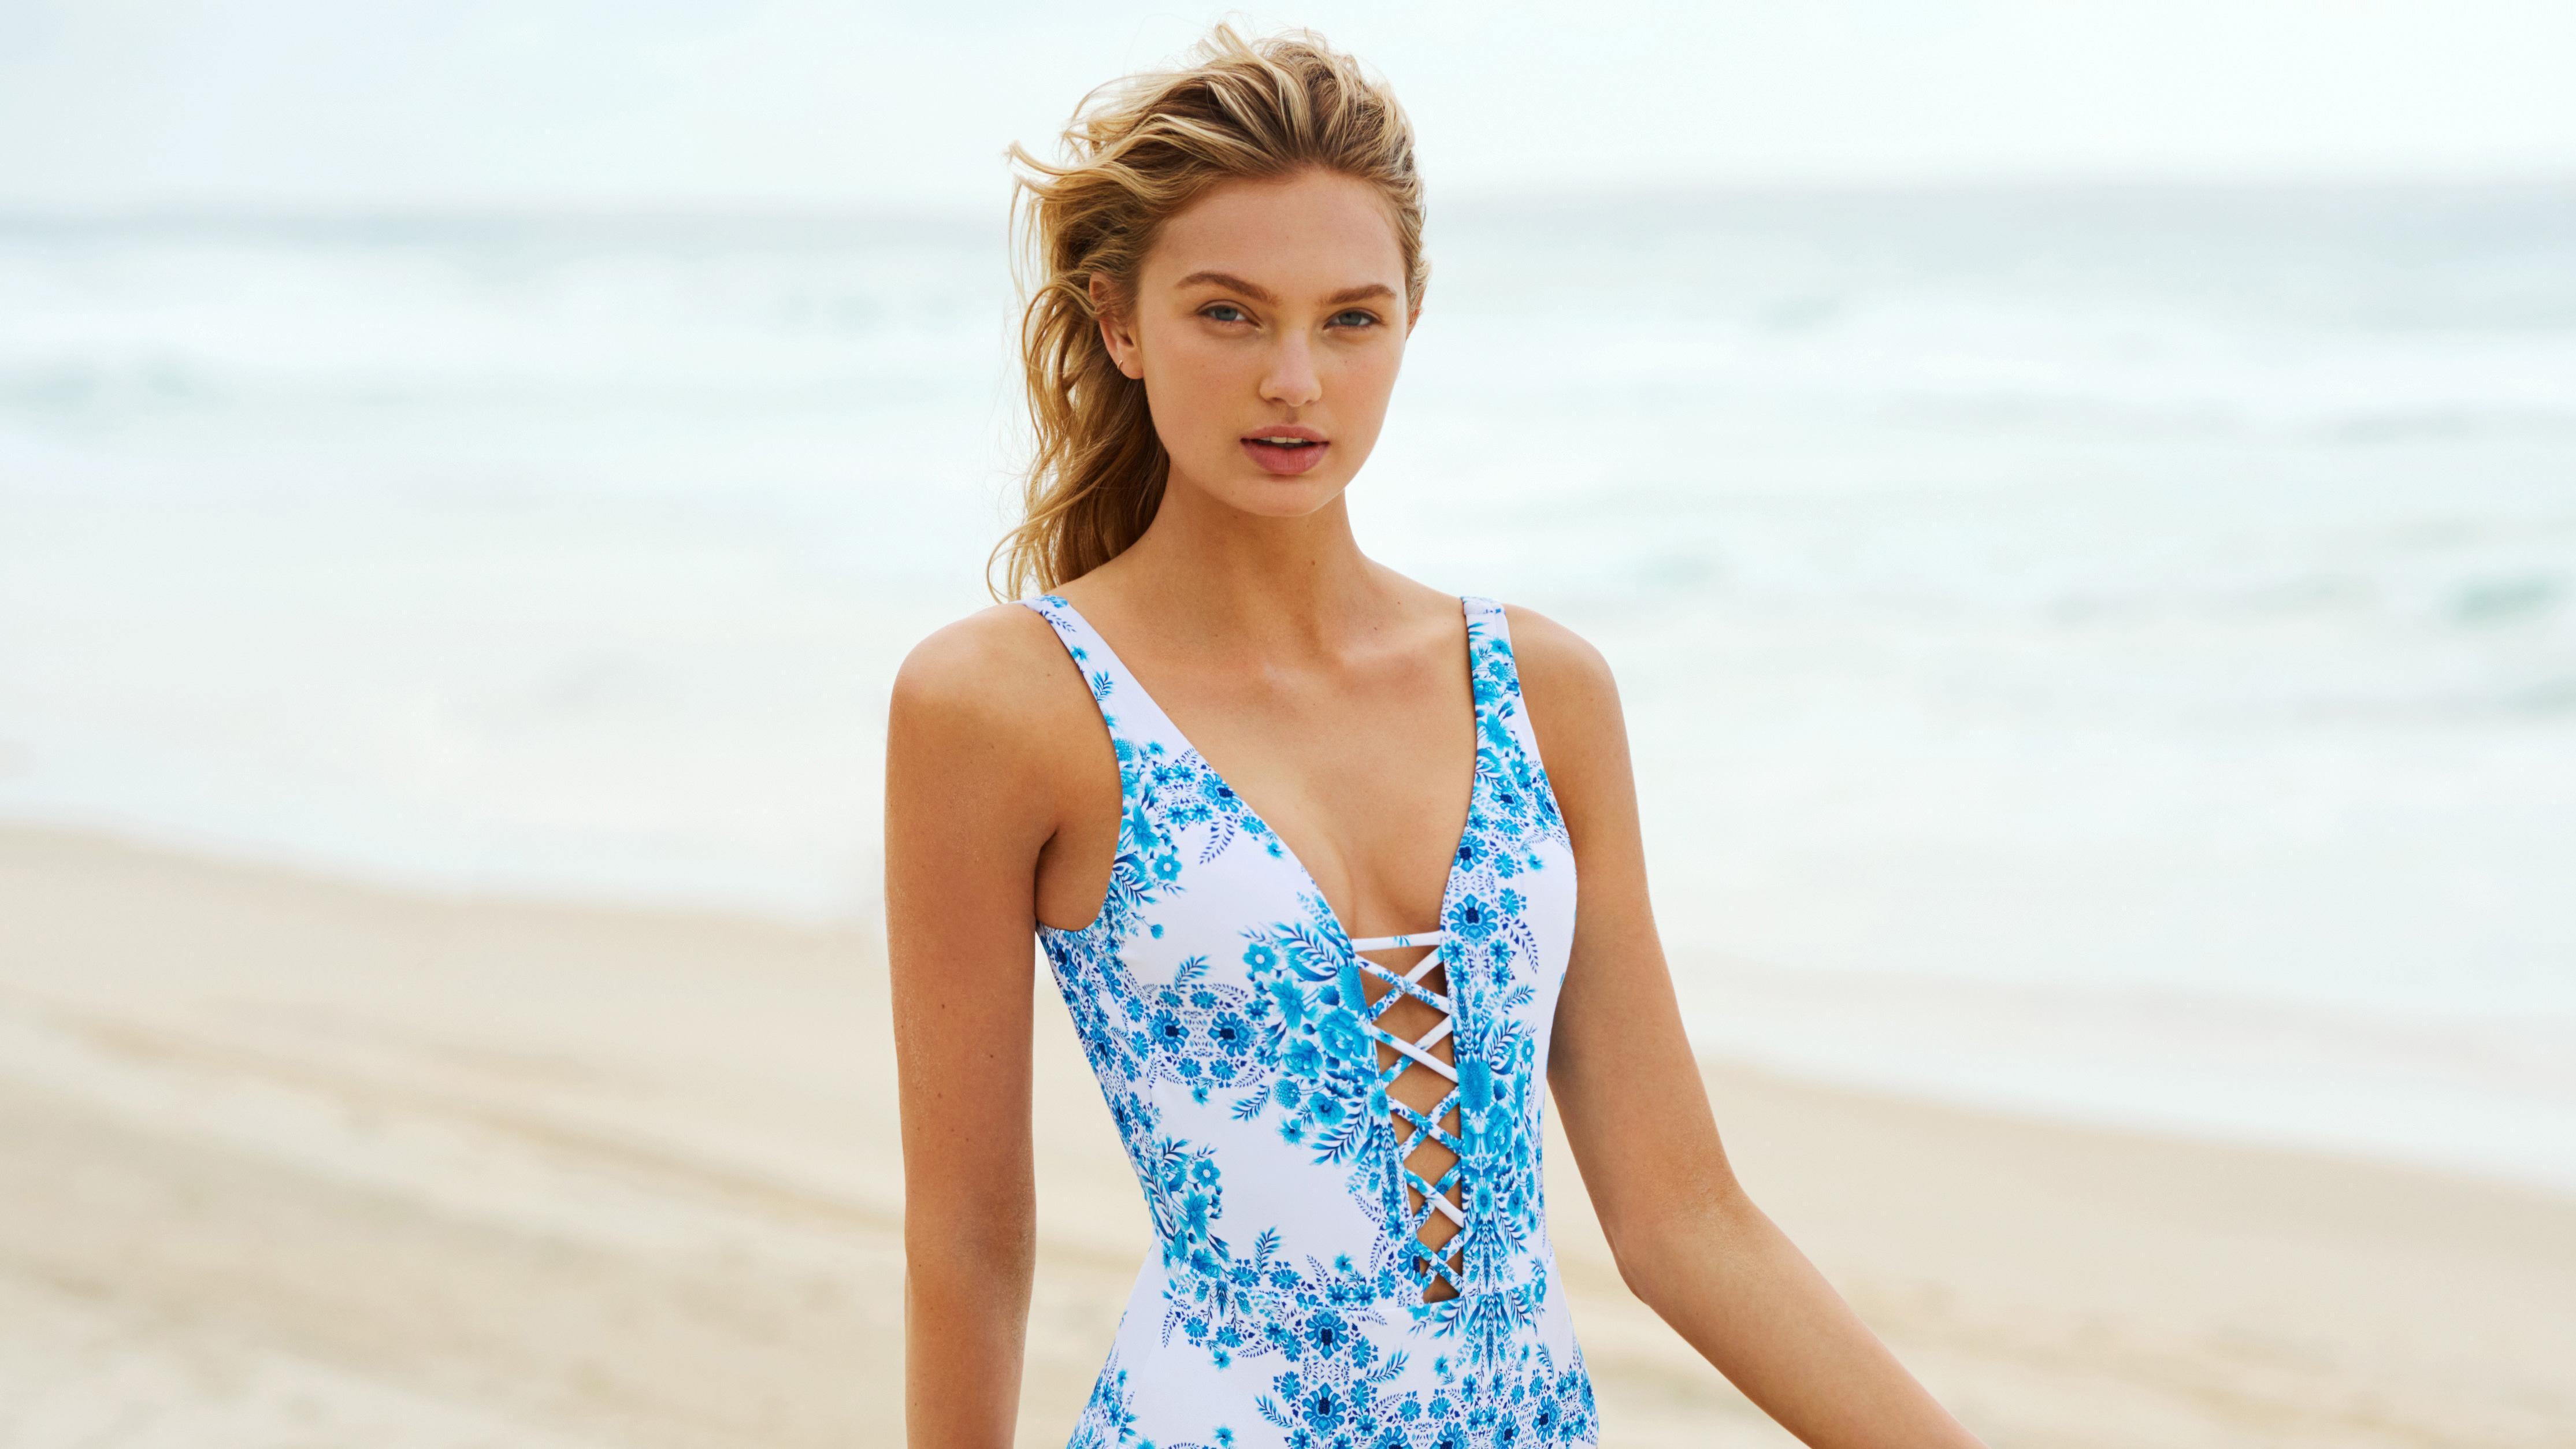 Romee Strijd Seafolly Summer 2019 Campaign 4k, HD Celebrities, 4k ...